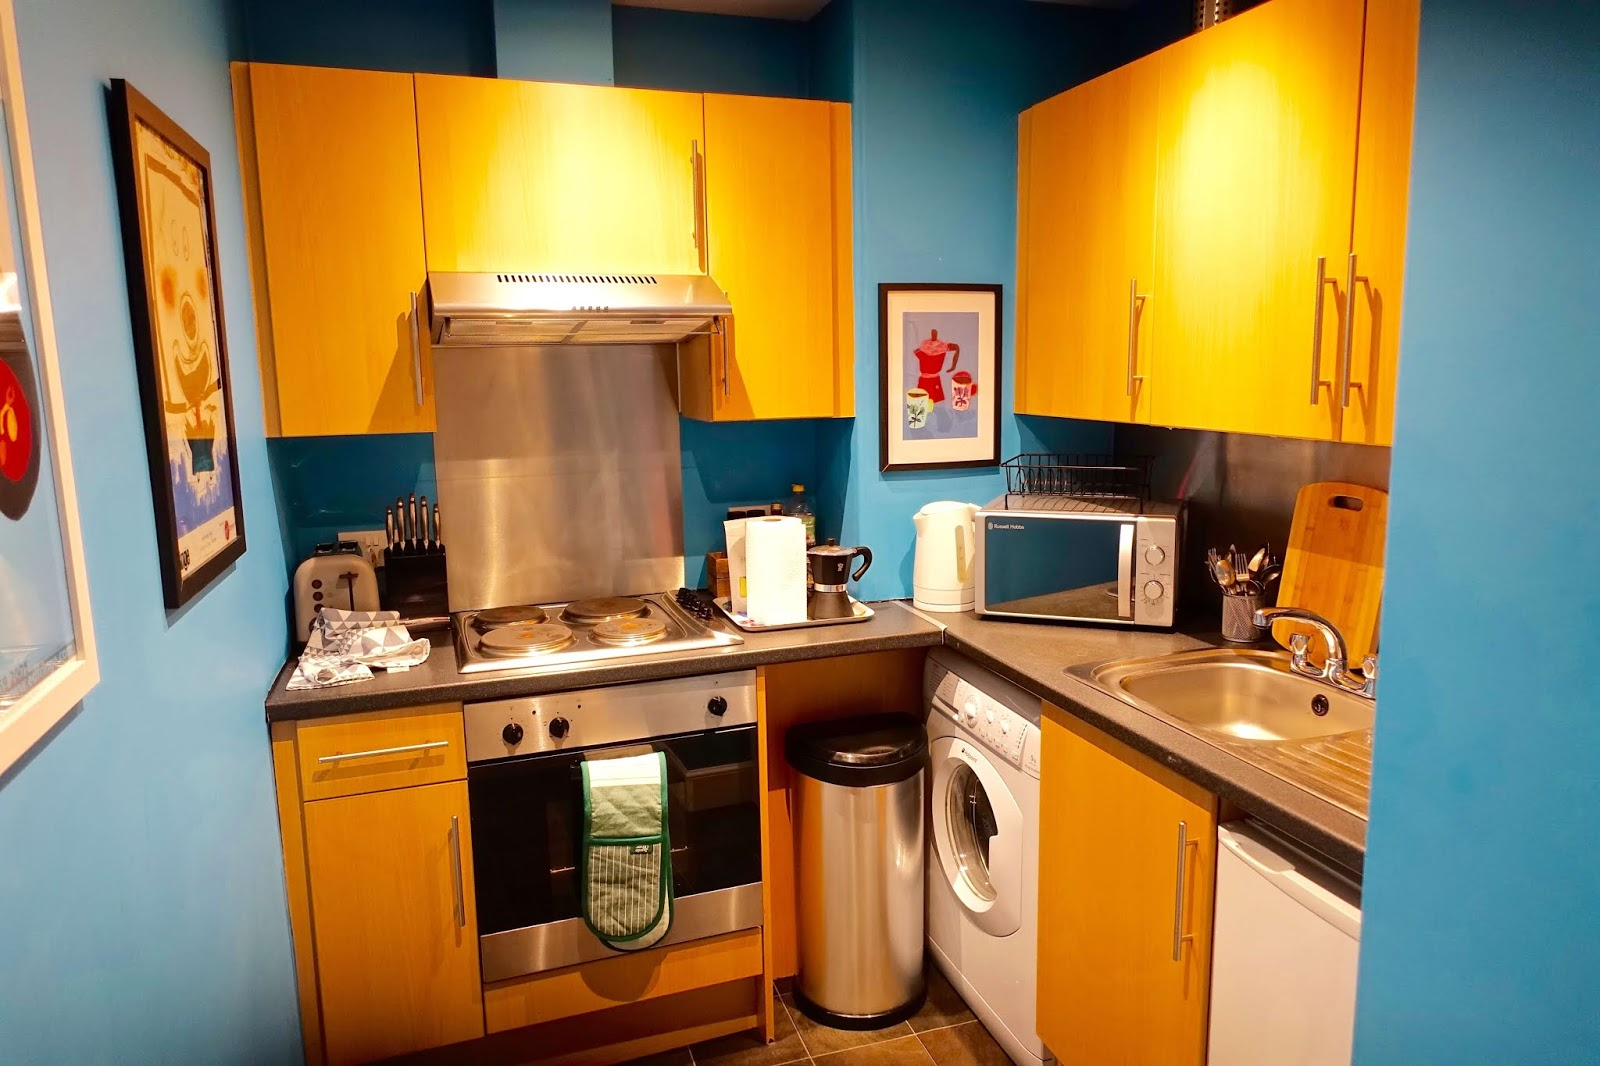 kitchen at vibrant apartment by the castle edinburgh